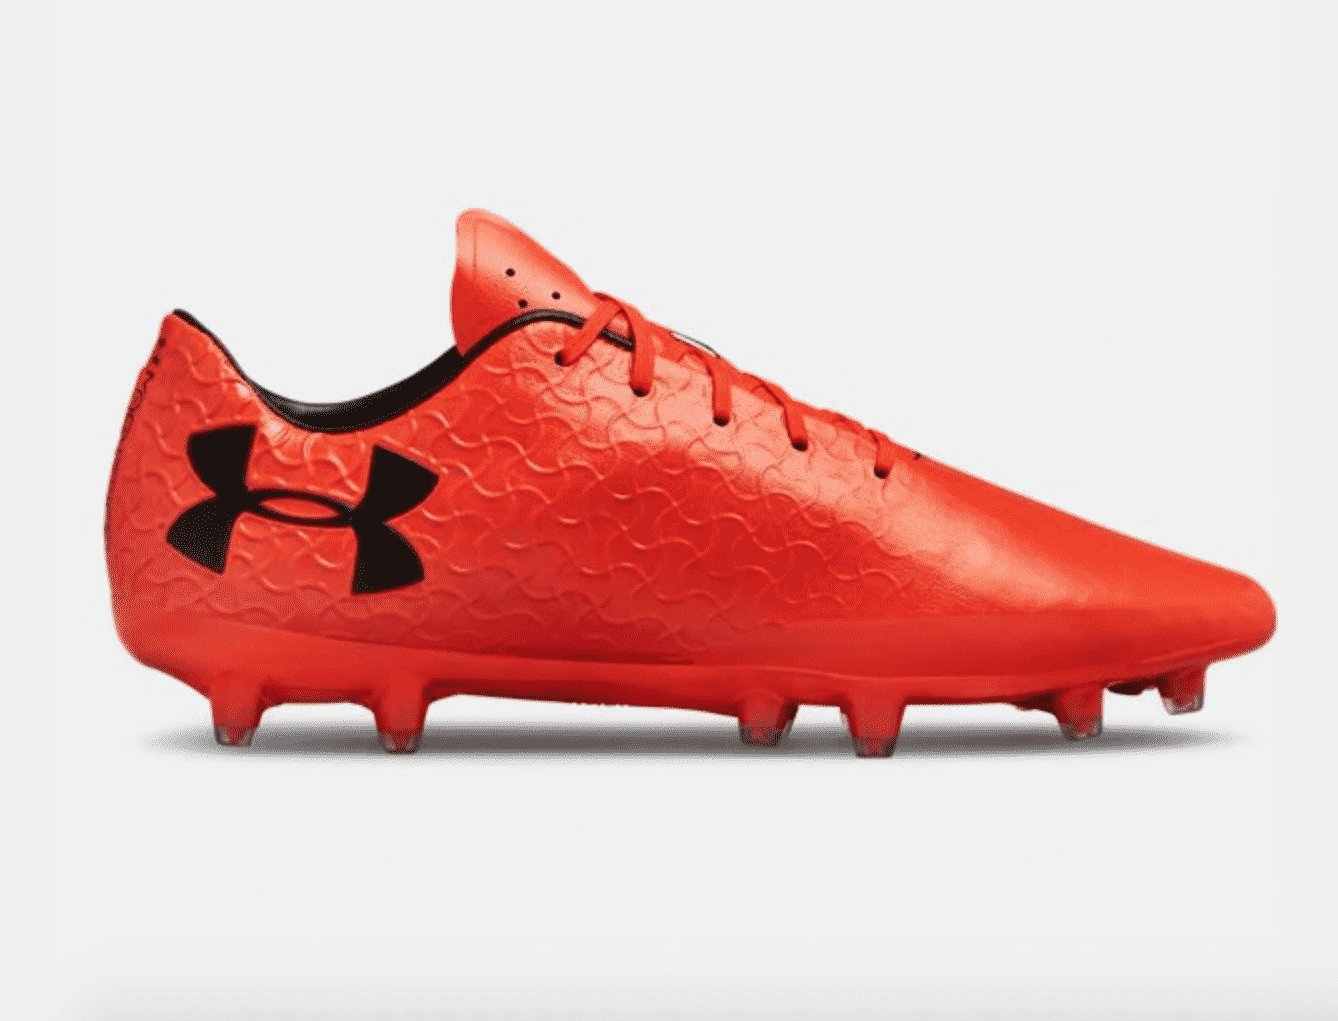 under-armour-magnetico-radio-red-